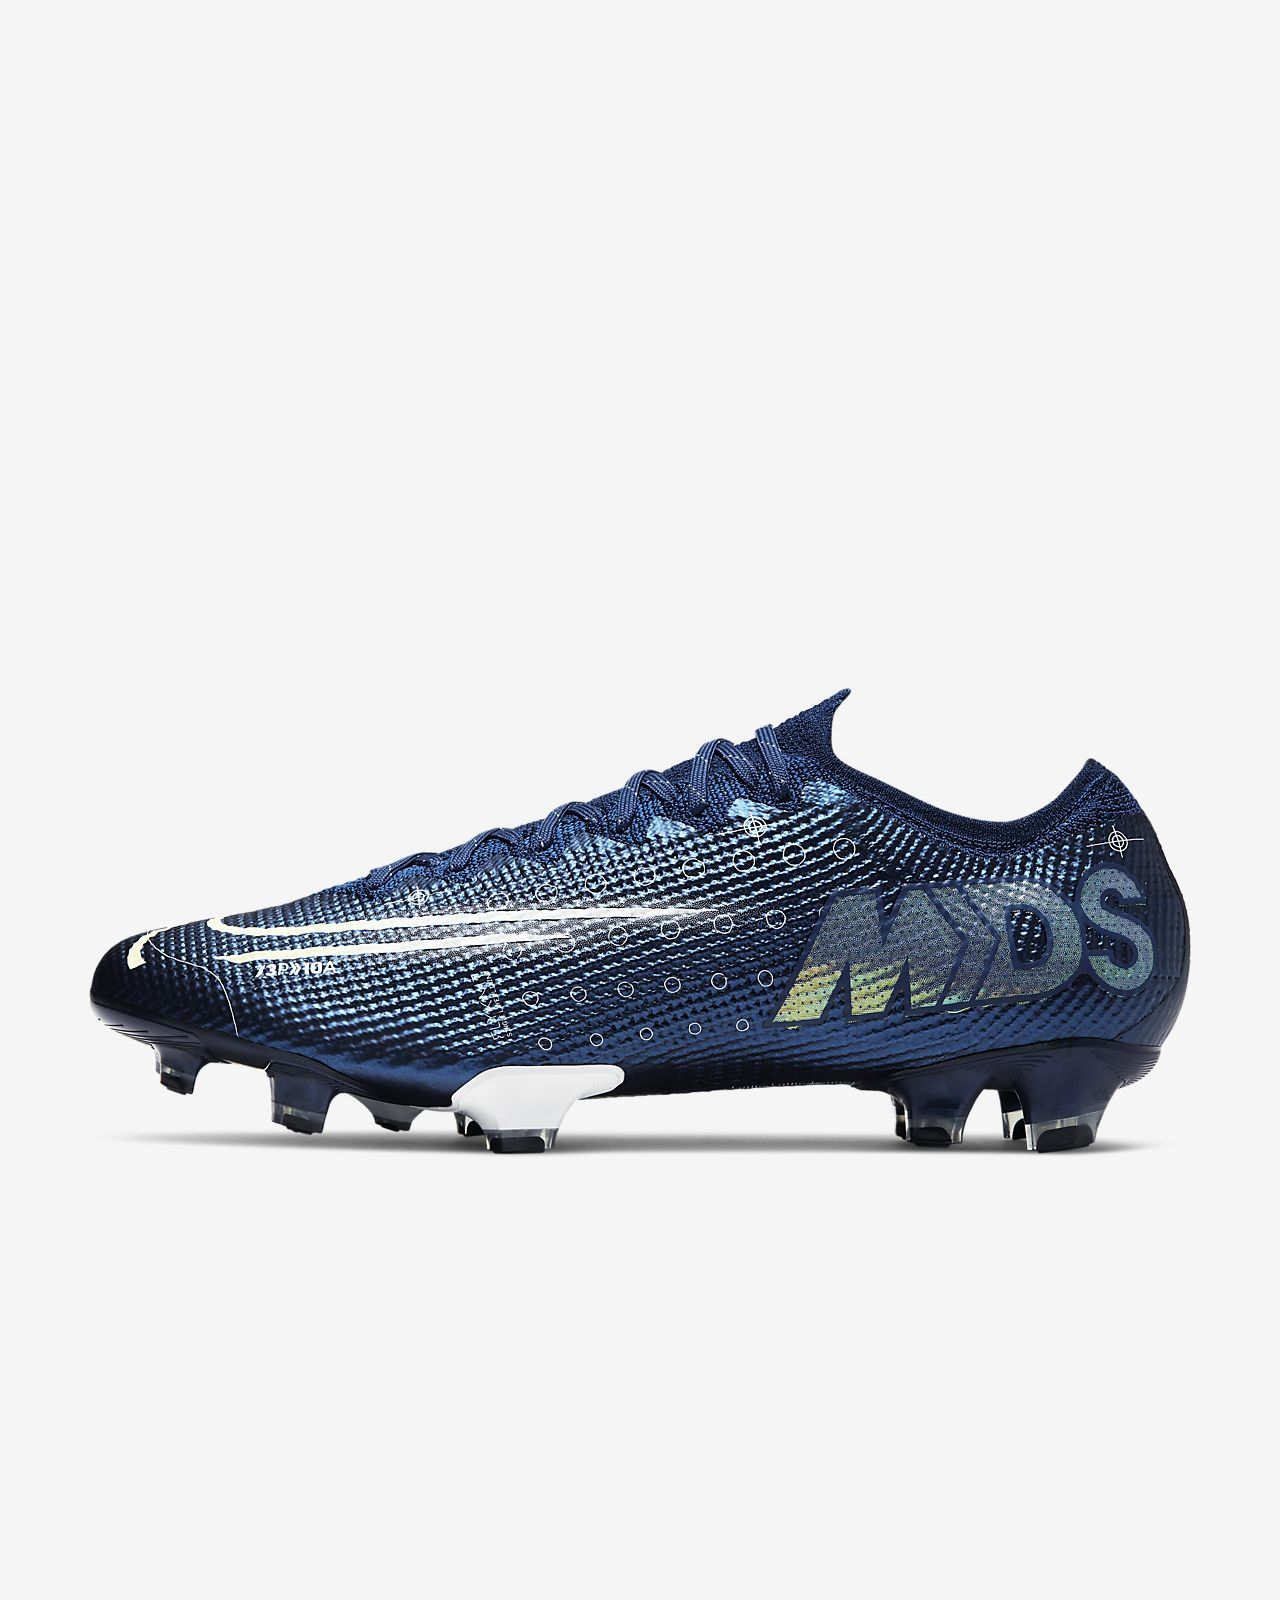 offre spéciale San Francisco Nouvelle Nike Mercurial Vapor 13 Elite MDS FG Firm-Ground Football Boot